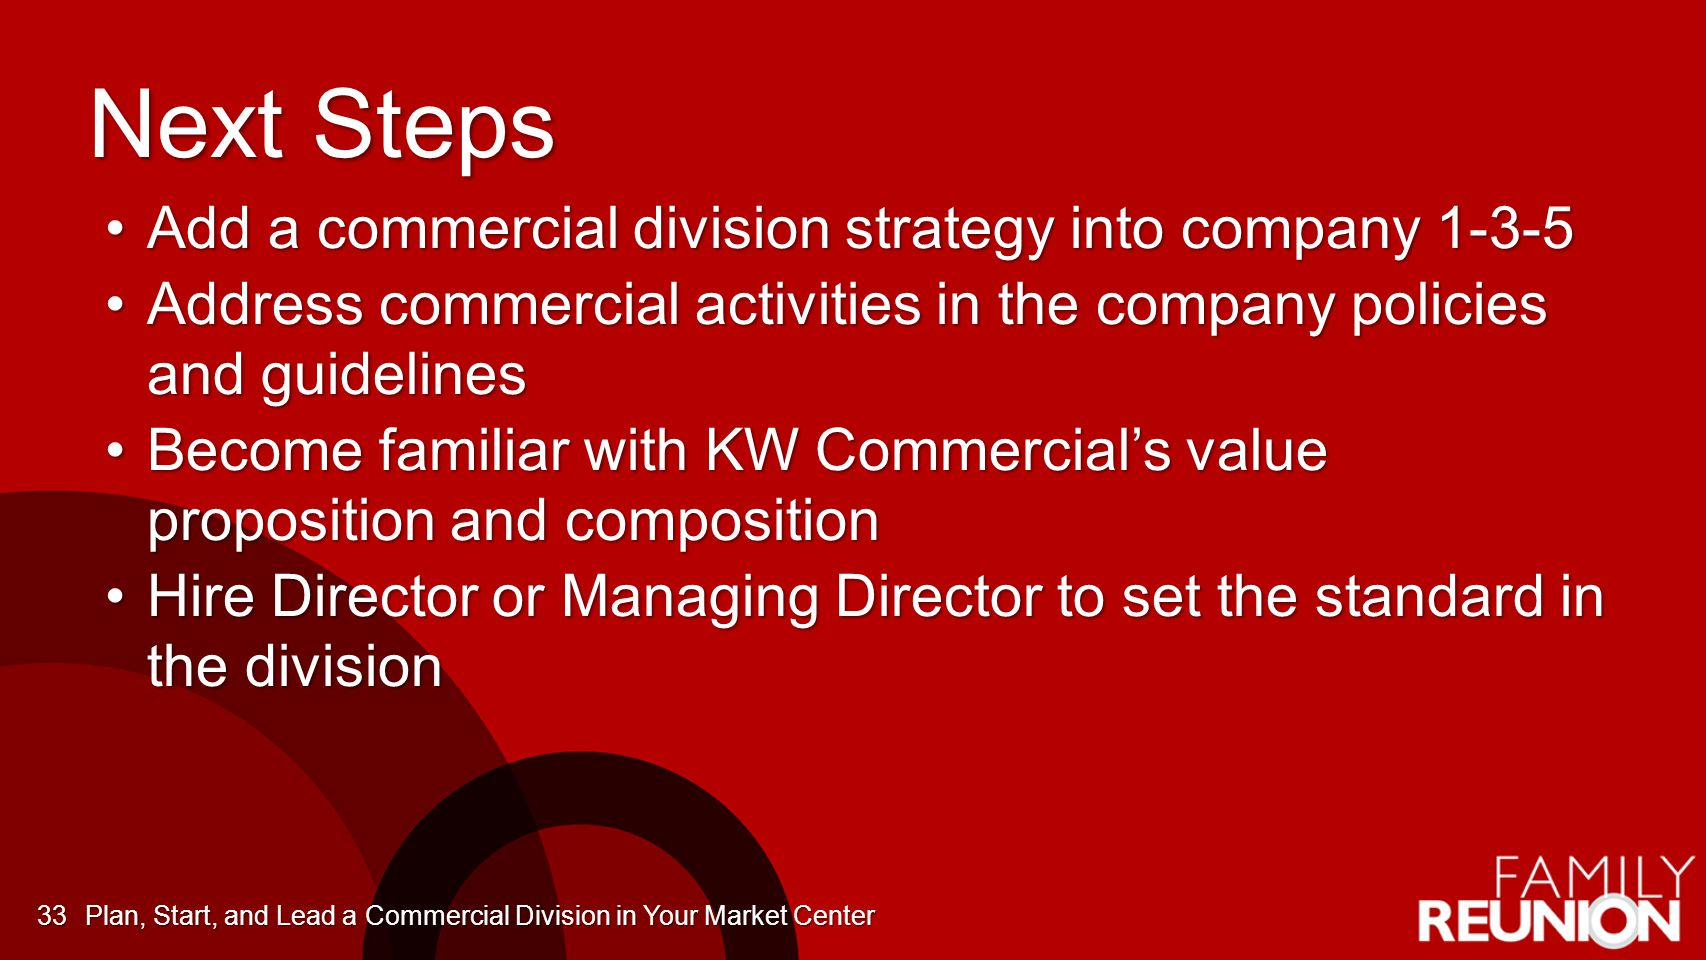 Next Steps Add a commercial division strategy into company 1-3-5Add a commercial division strategy into company 1-3-5 Address commercial activities in the company policies and guidelinesAddress commercial activities in the company policies and guidelines Become familiar with KW Commercial's value proposition and compositionBecome familiar with KW Commercial's value proposition and composition Hire Director or Managing Director to set the standard in the divisionHire Director or Managing Director to set the standard in the division Plan, Start, and Lead a Commercial Division in Your Market Center33